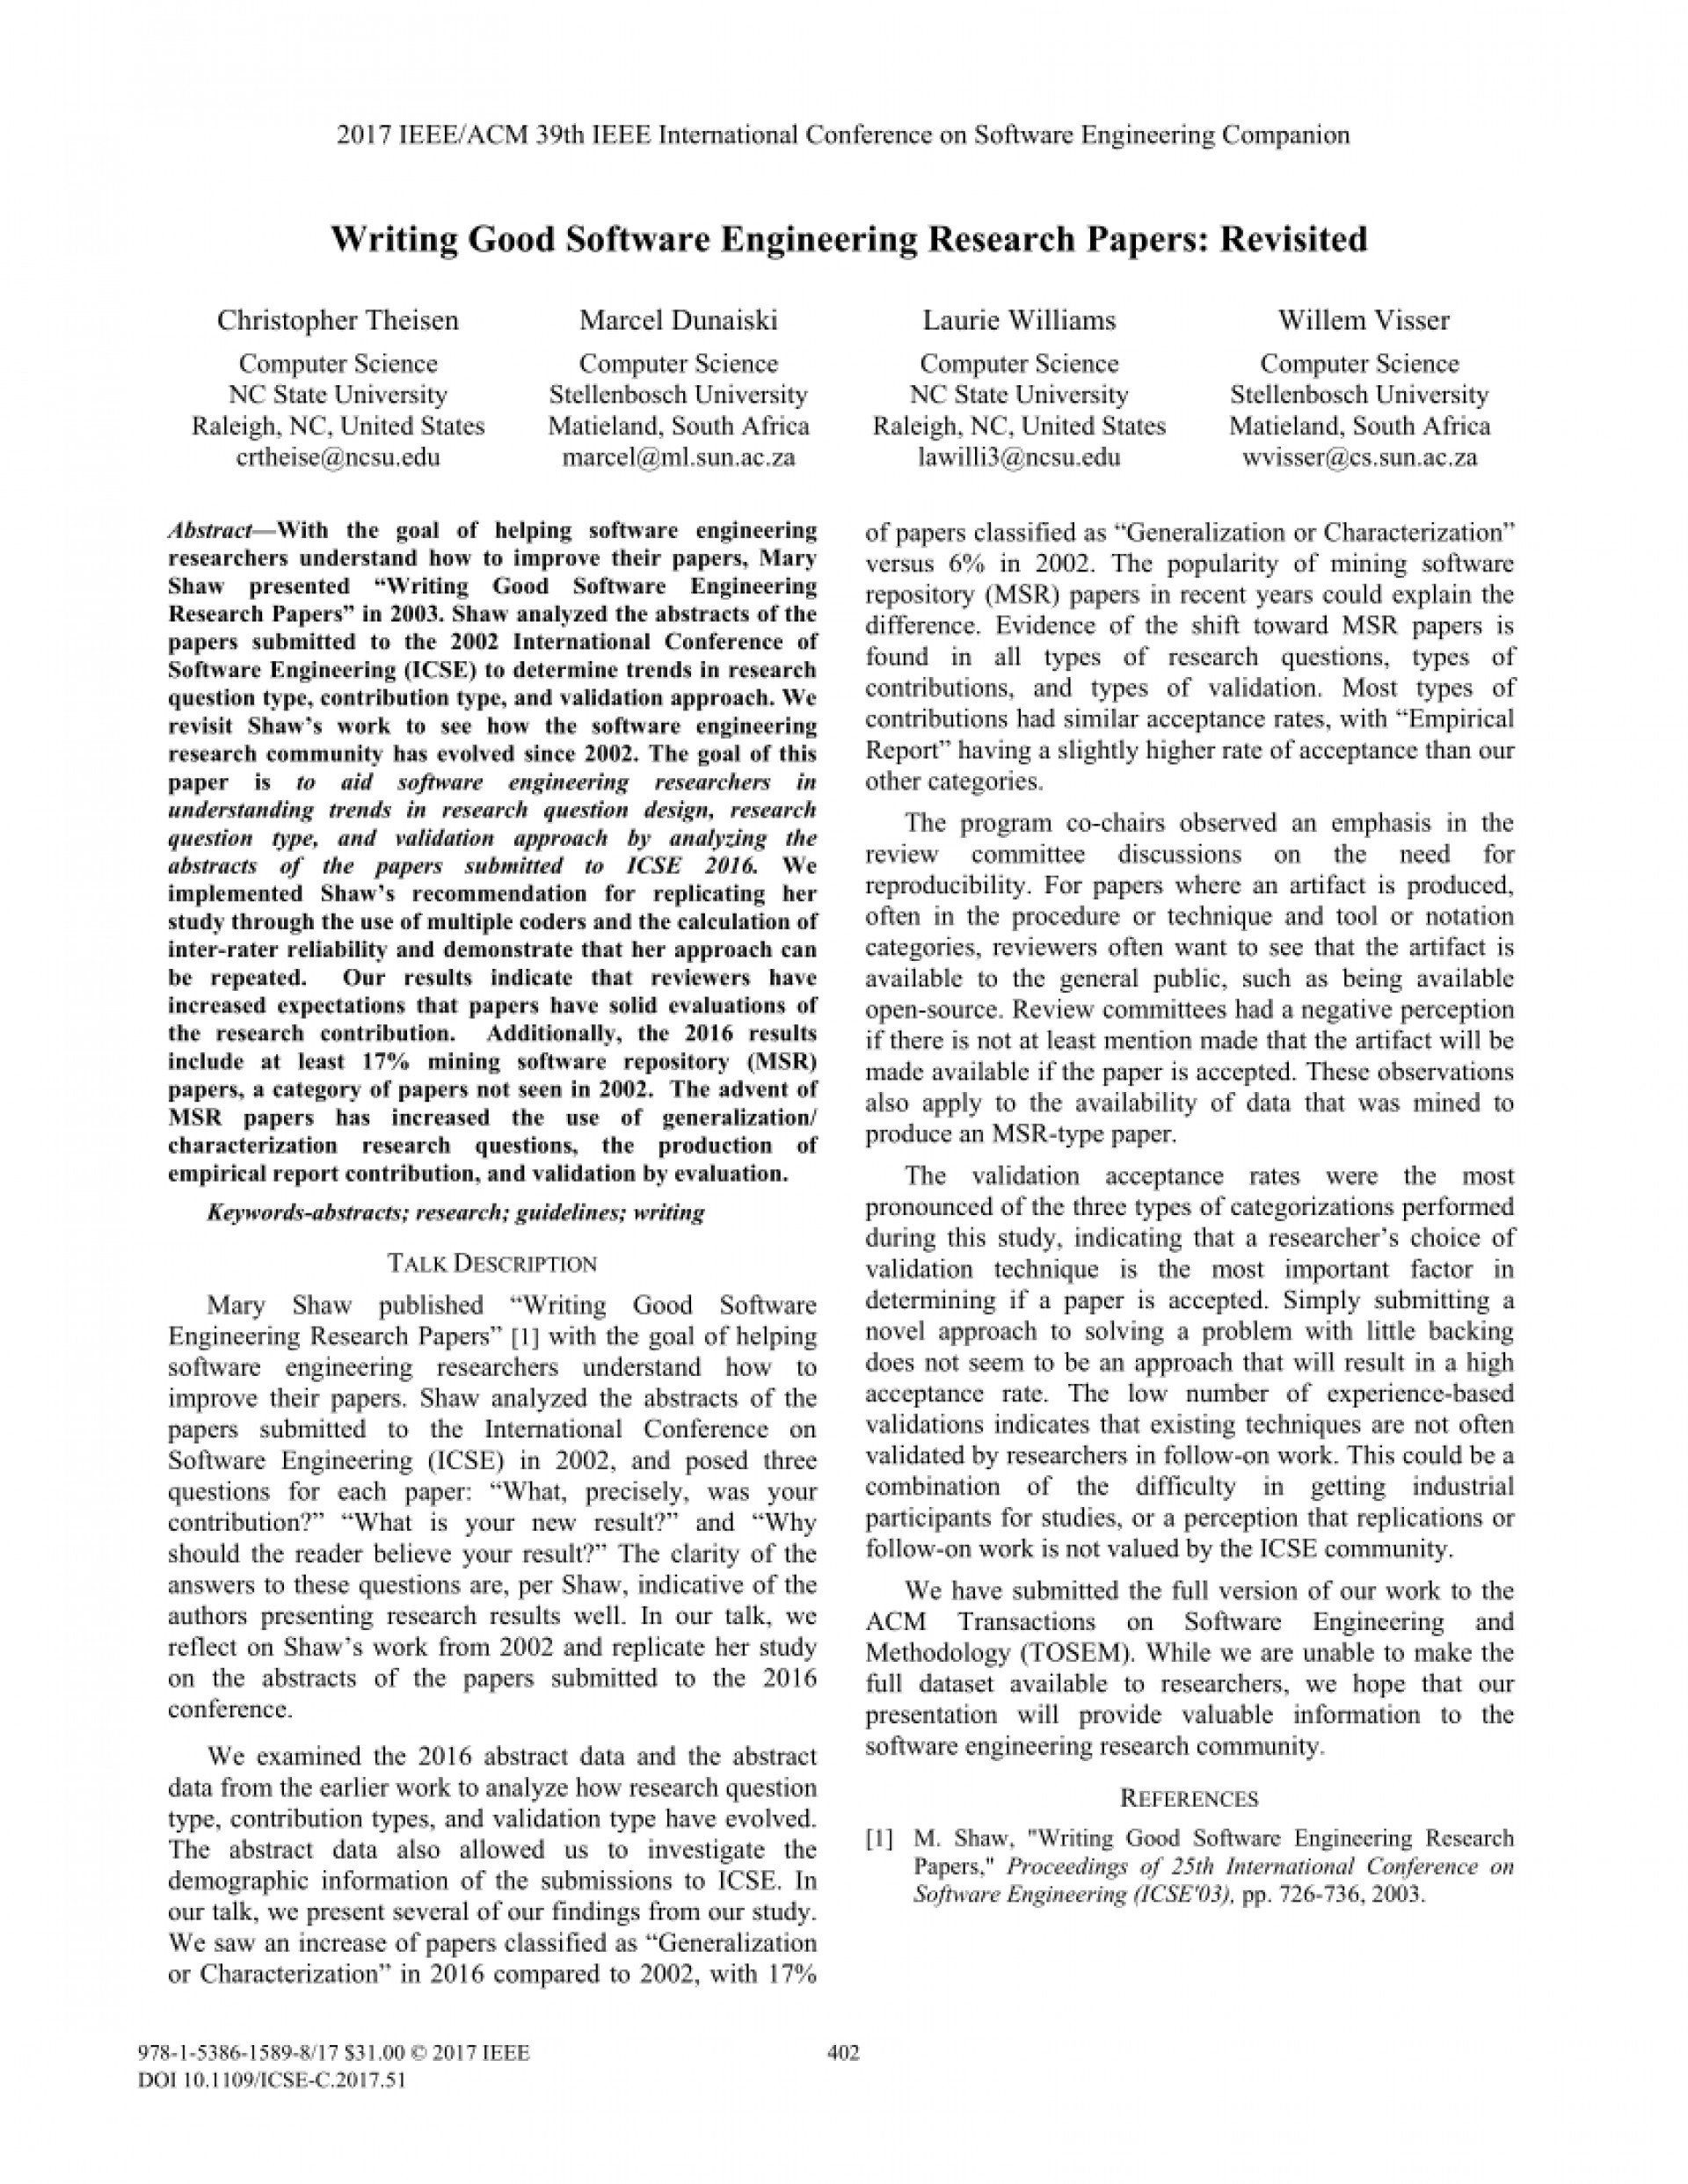 004 Ieee Researchs In Computer Science Largepreview Unusual Research Papers 2017 1920